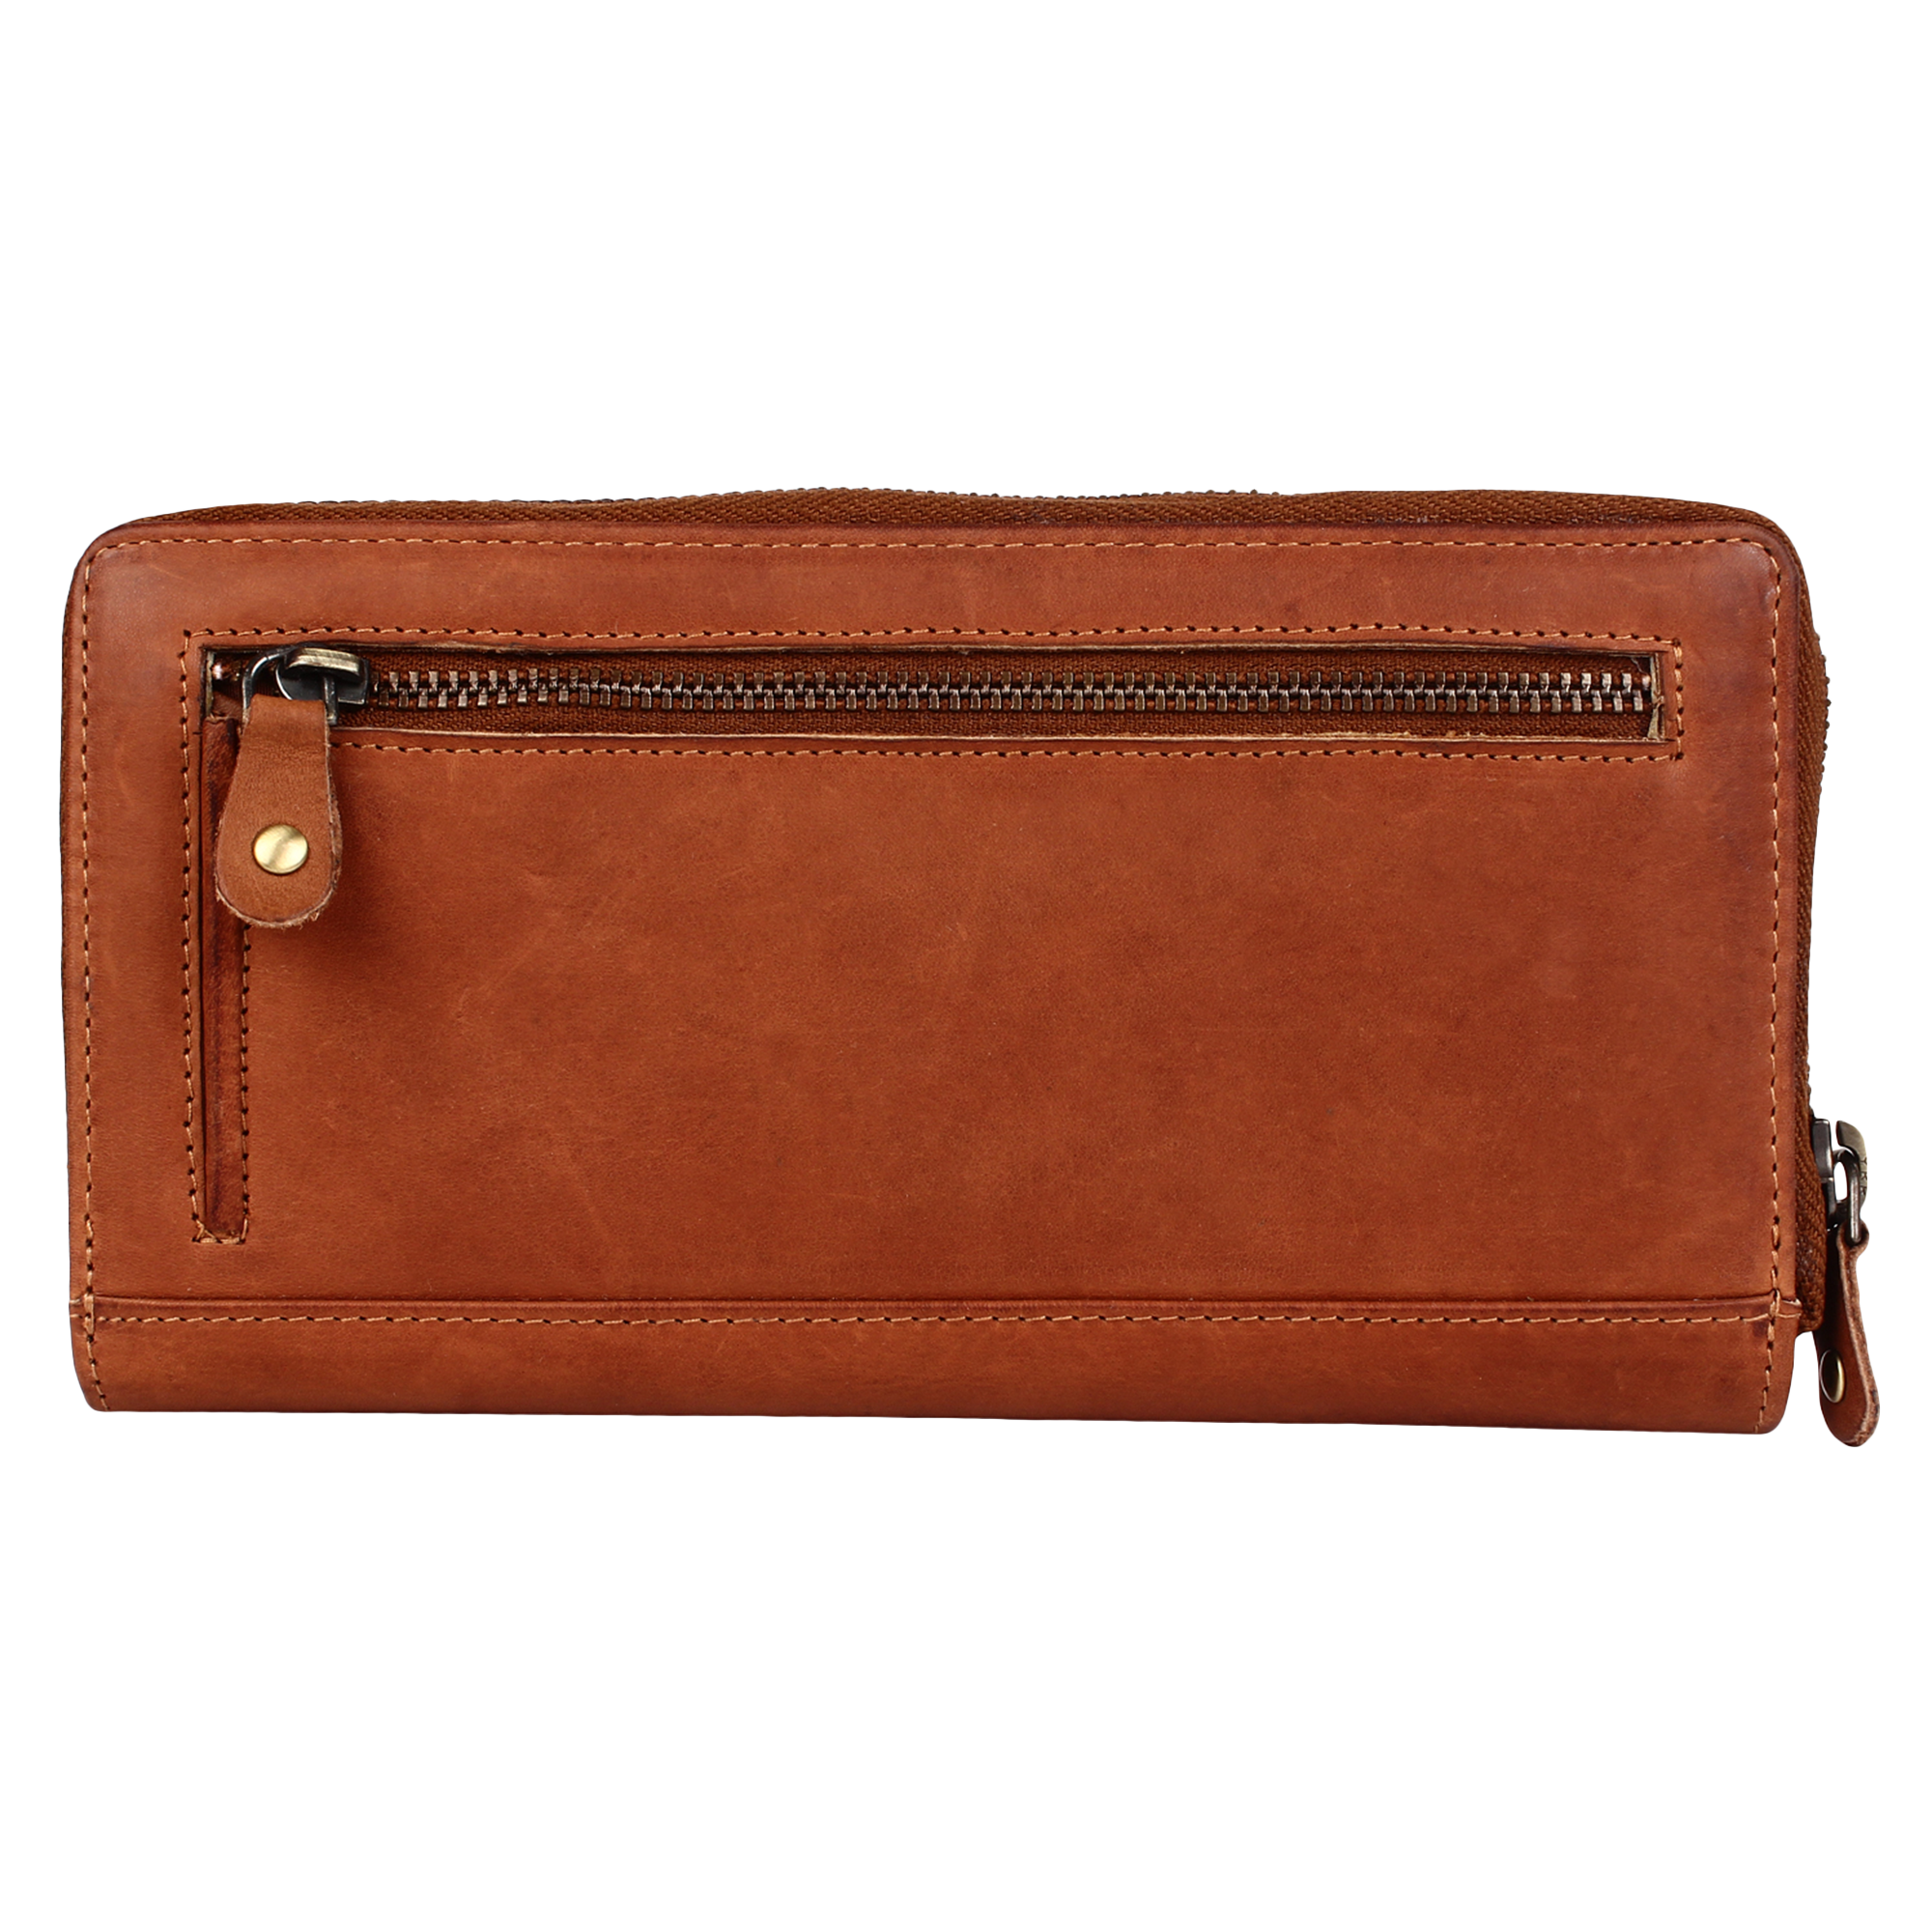 First Lady Clutch (Brown)